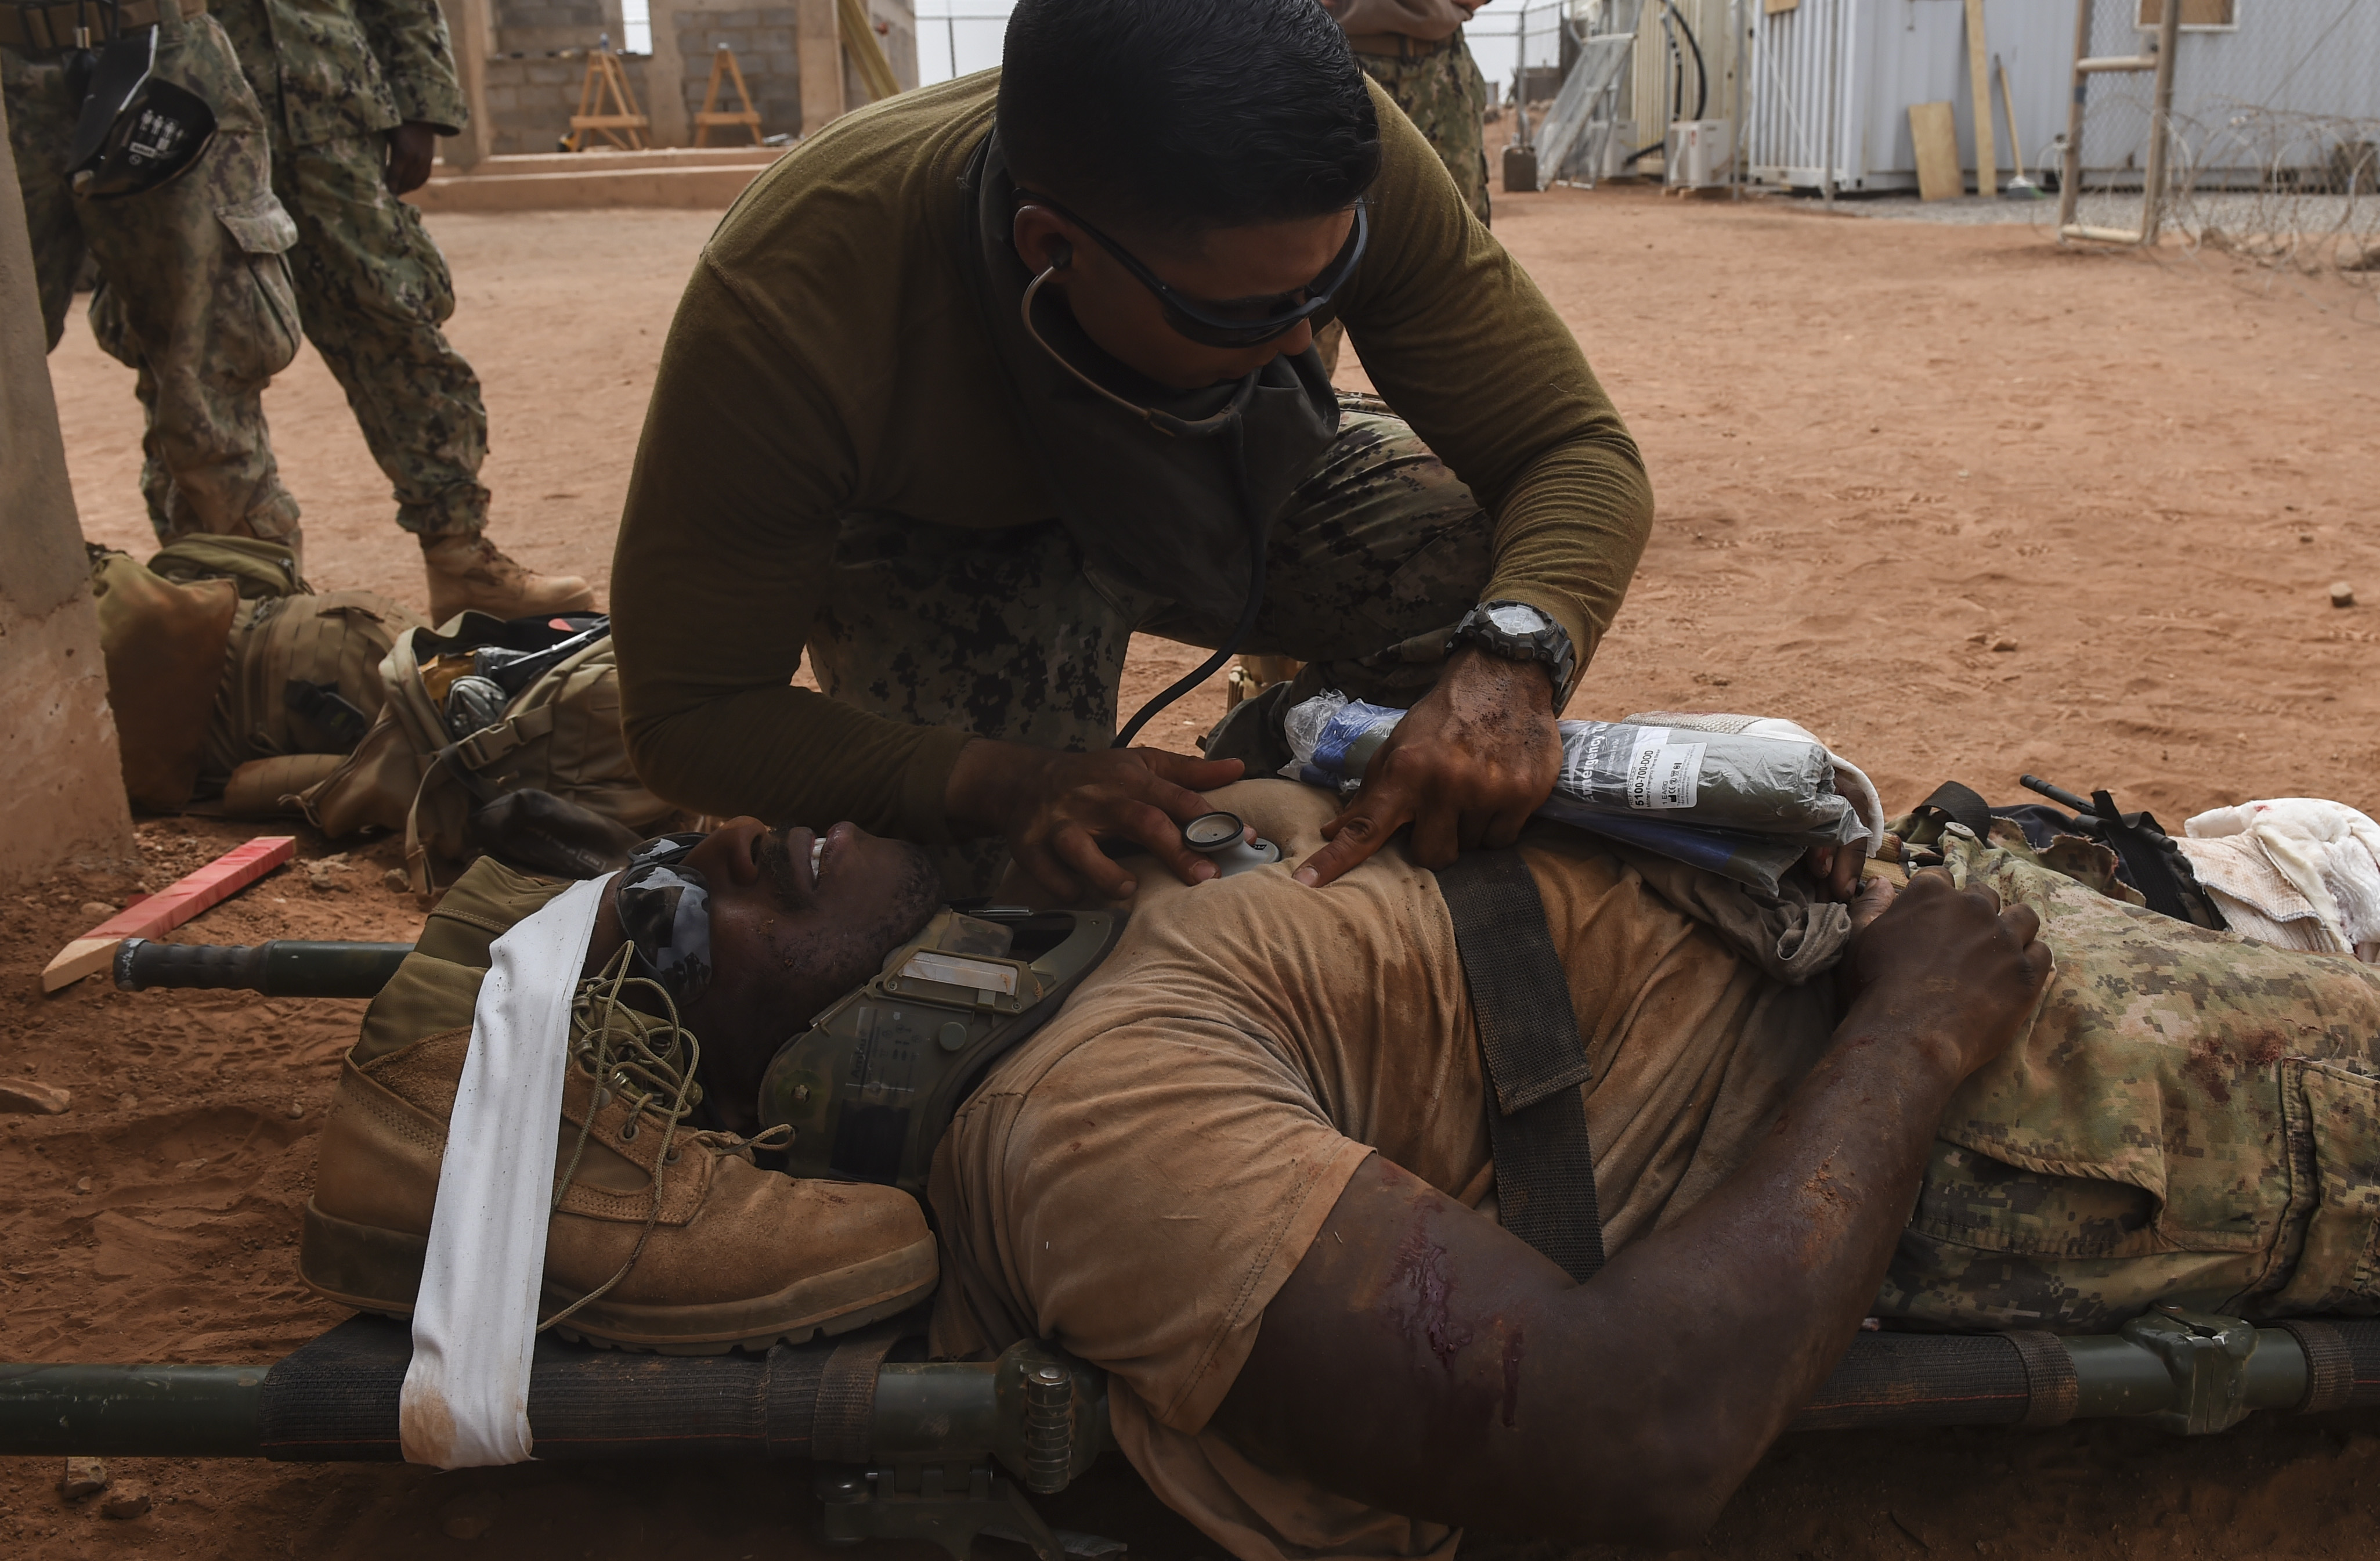 U.S. Navy Hospital Corpsman 3rd Class David Rojas from the Naval Mobile Construction Battalion One, a maneuver unit of the Combined Joint Task Force-Horn of Africa, uses a stethoscope to listen to a patient's heartbeat during a bilateral exercise with French forces in the Arta region, July 19, 2017. This bilateral training was the first execution of medical evacuation procedures with French military personnel and increases the ability of all participants to plan, communicate and execute complex operations. (U.S. Air Force photo by Staff Sgt. Eboni Prince/Released)